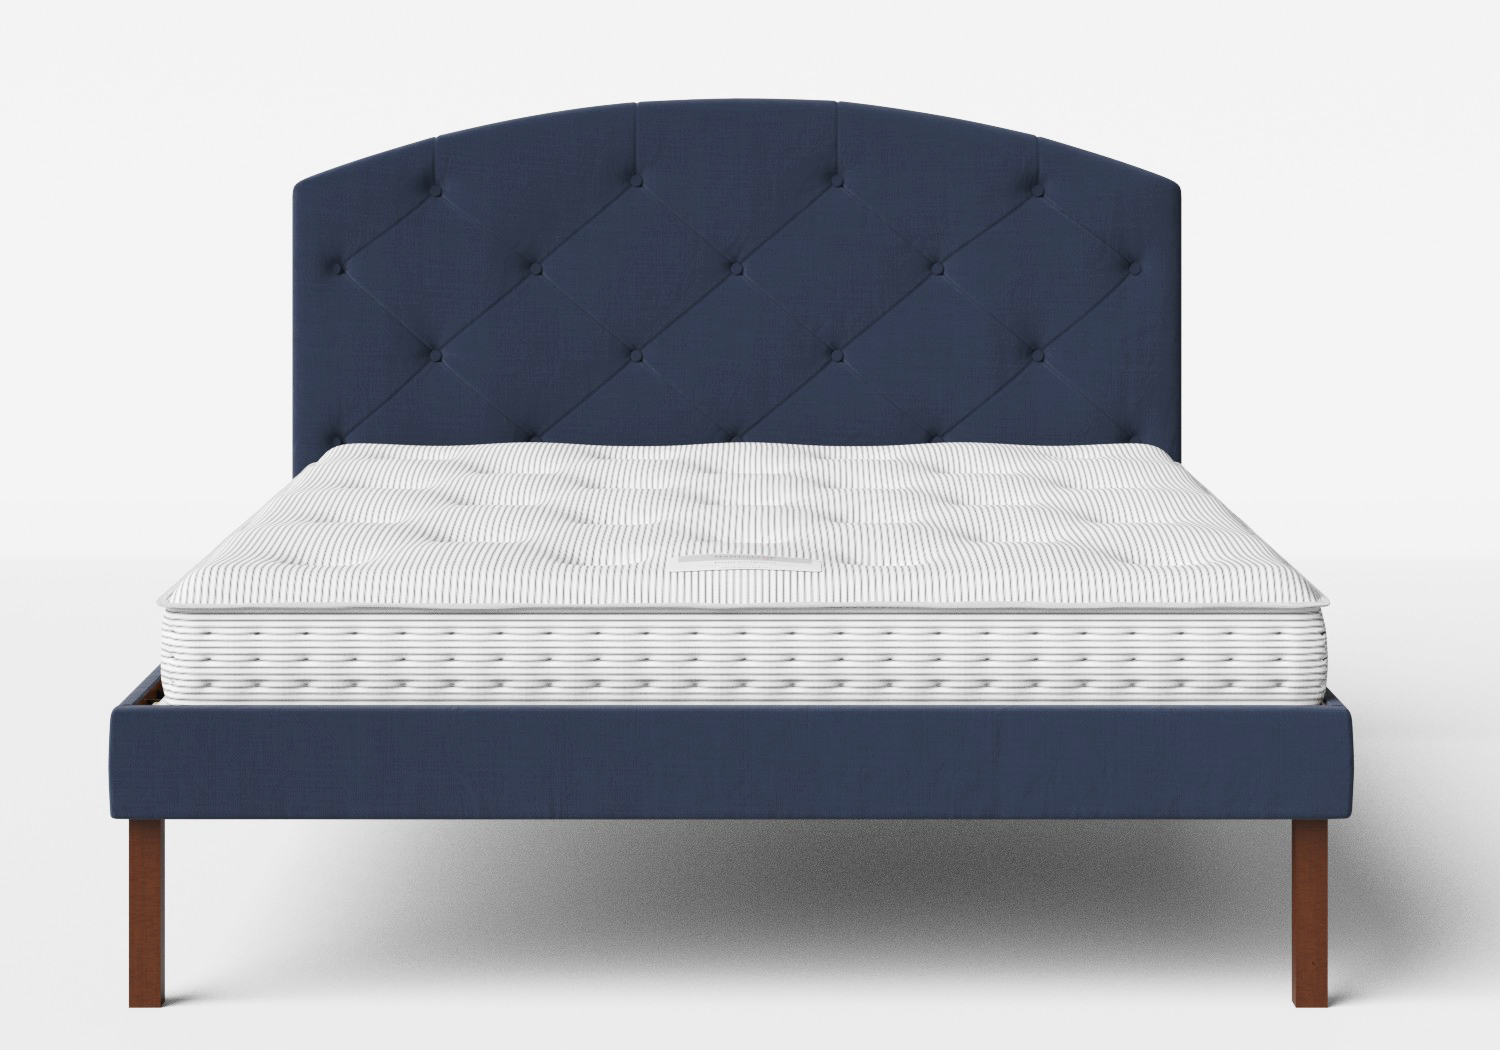 Okawa Upholstered Bed in Navy fabric with buttoning shown with Juno 1 mattress